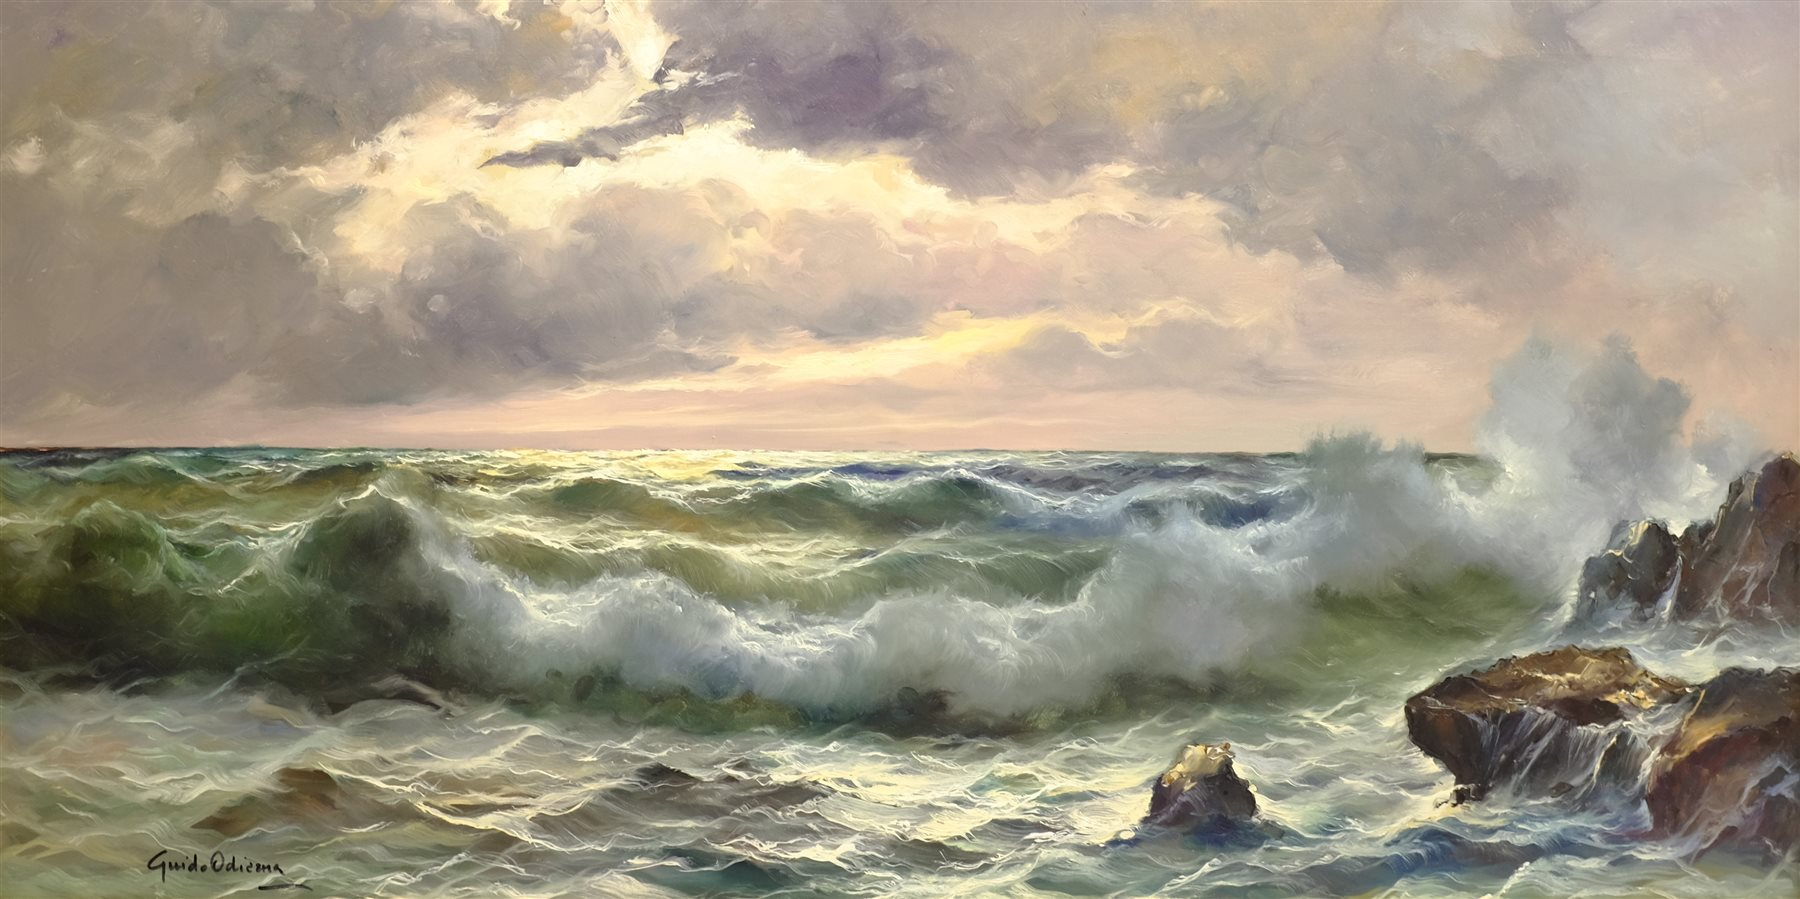 Guido Odierna (Italian 1913-1991): Waves Breaking on the Shore at Twilight, oil on canvas signed 59c - Image 2 of 4